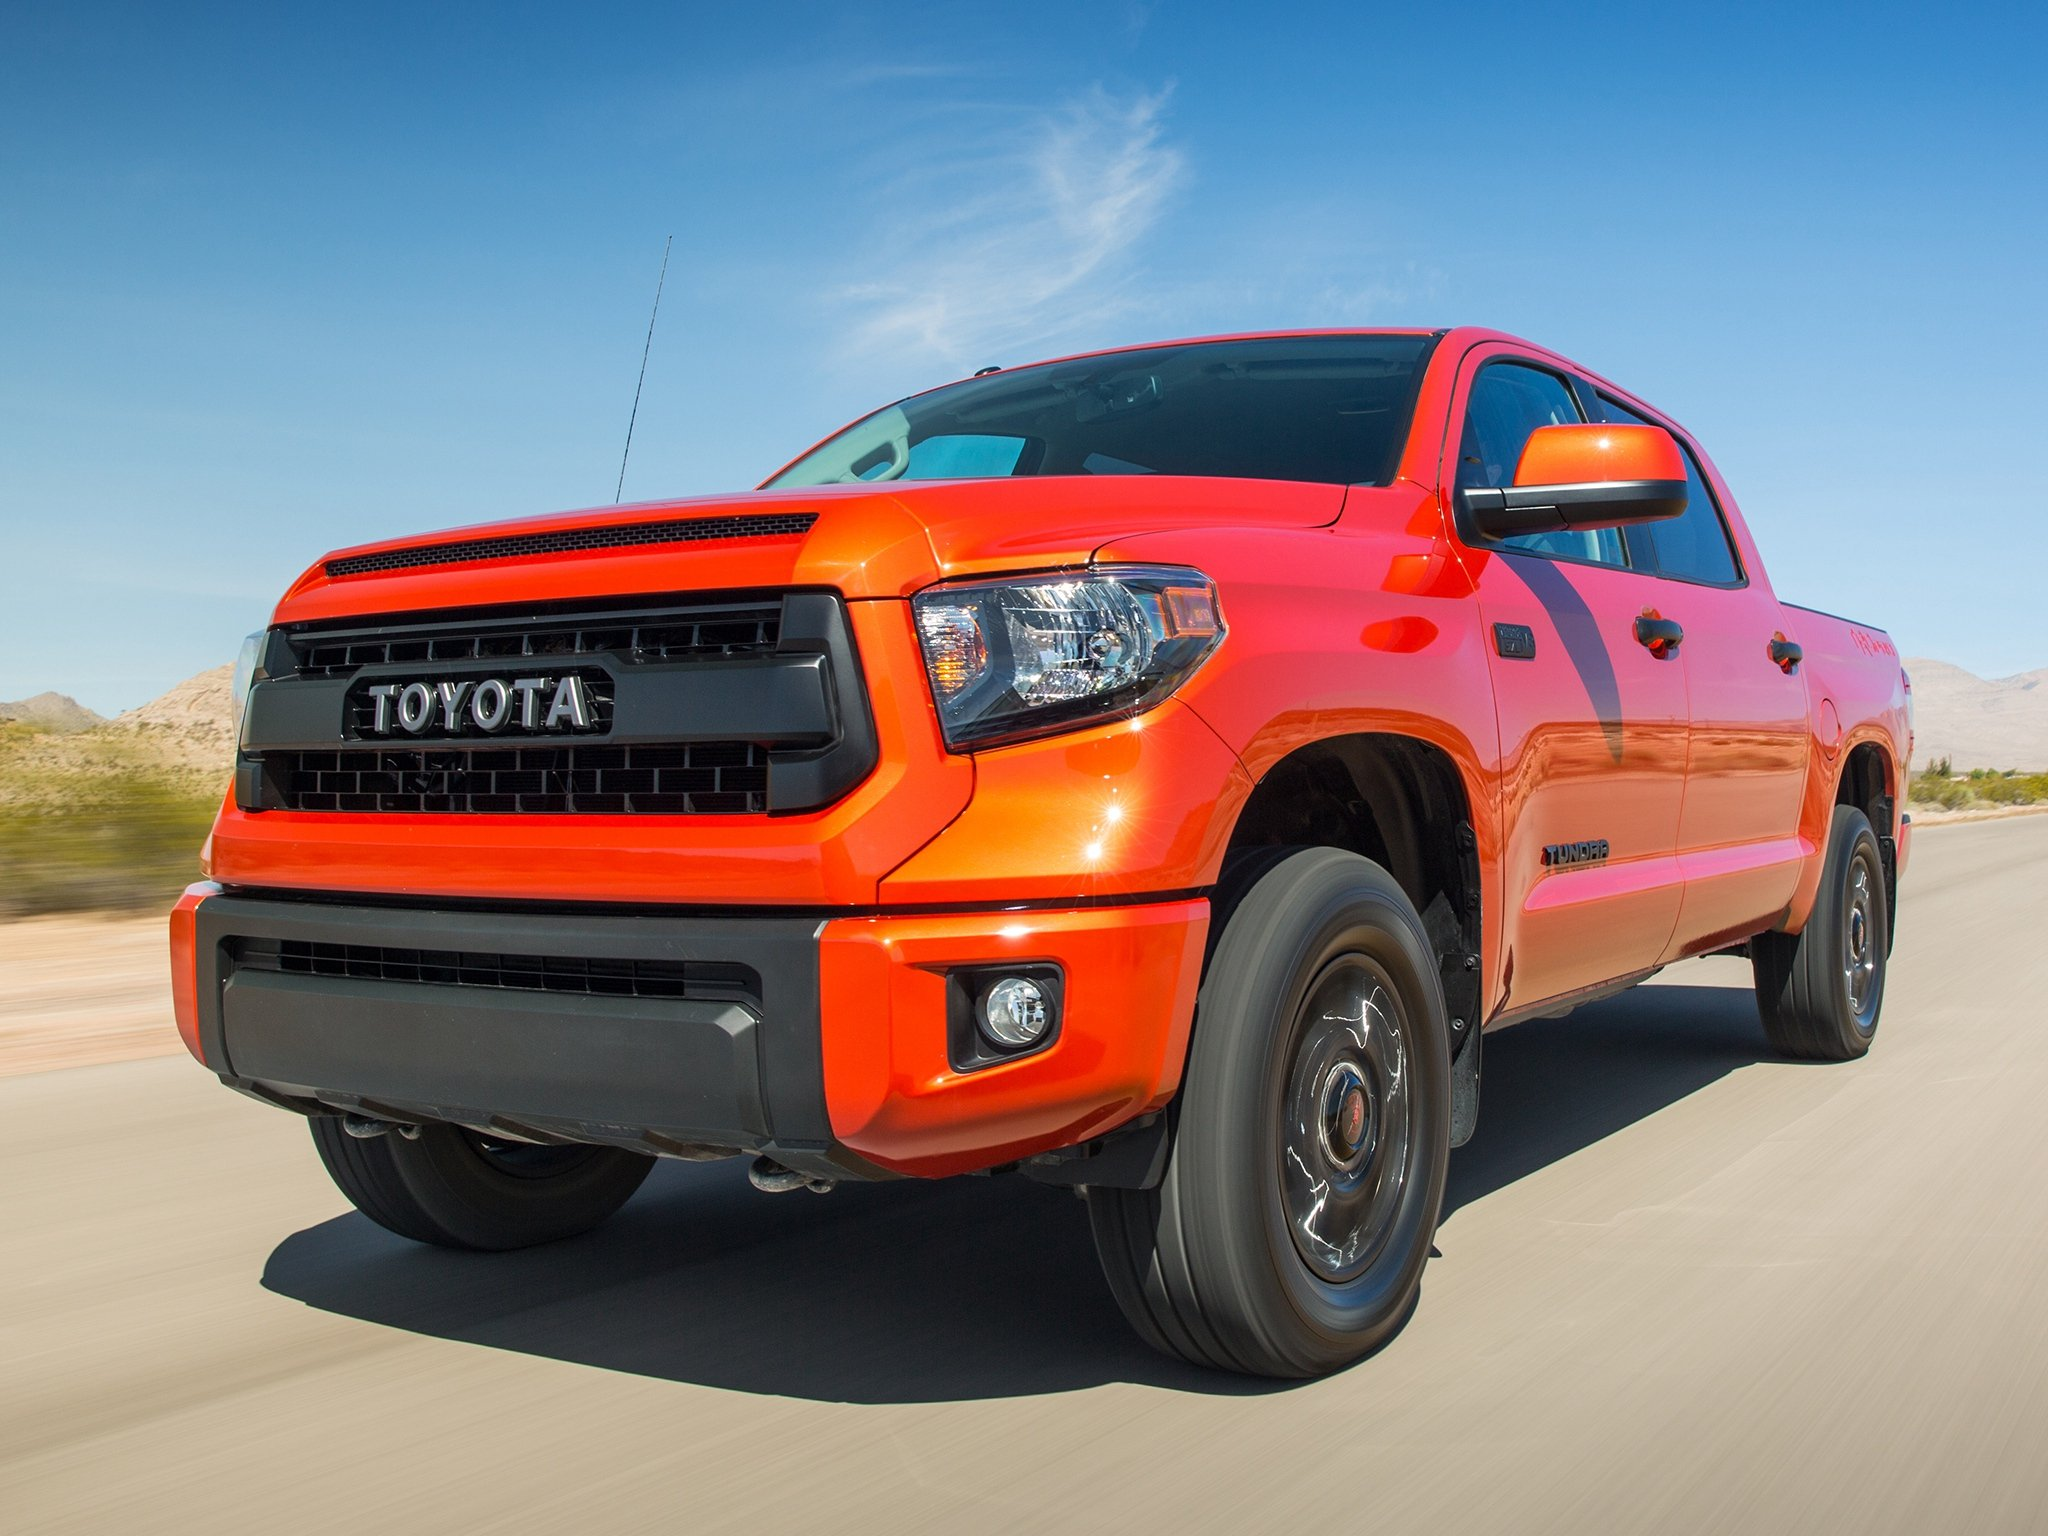 2015 trd toyota tundra double cab pro pickup w wallpaper 2048x1536 351047 wallpaperup. Black Bedroom Furniture Sets. Home Design Ideas